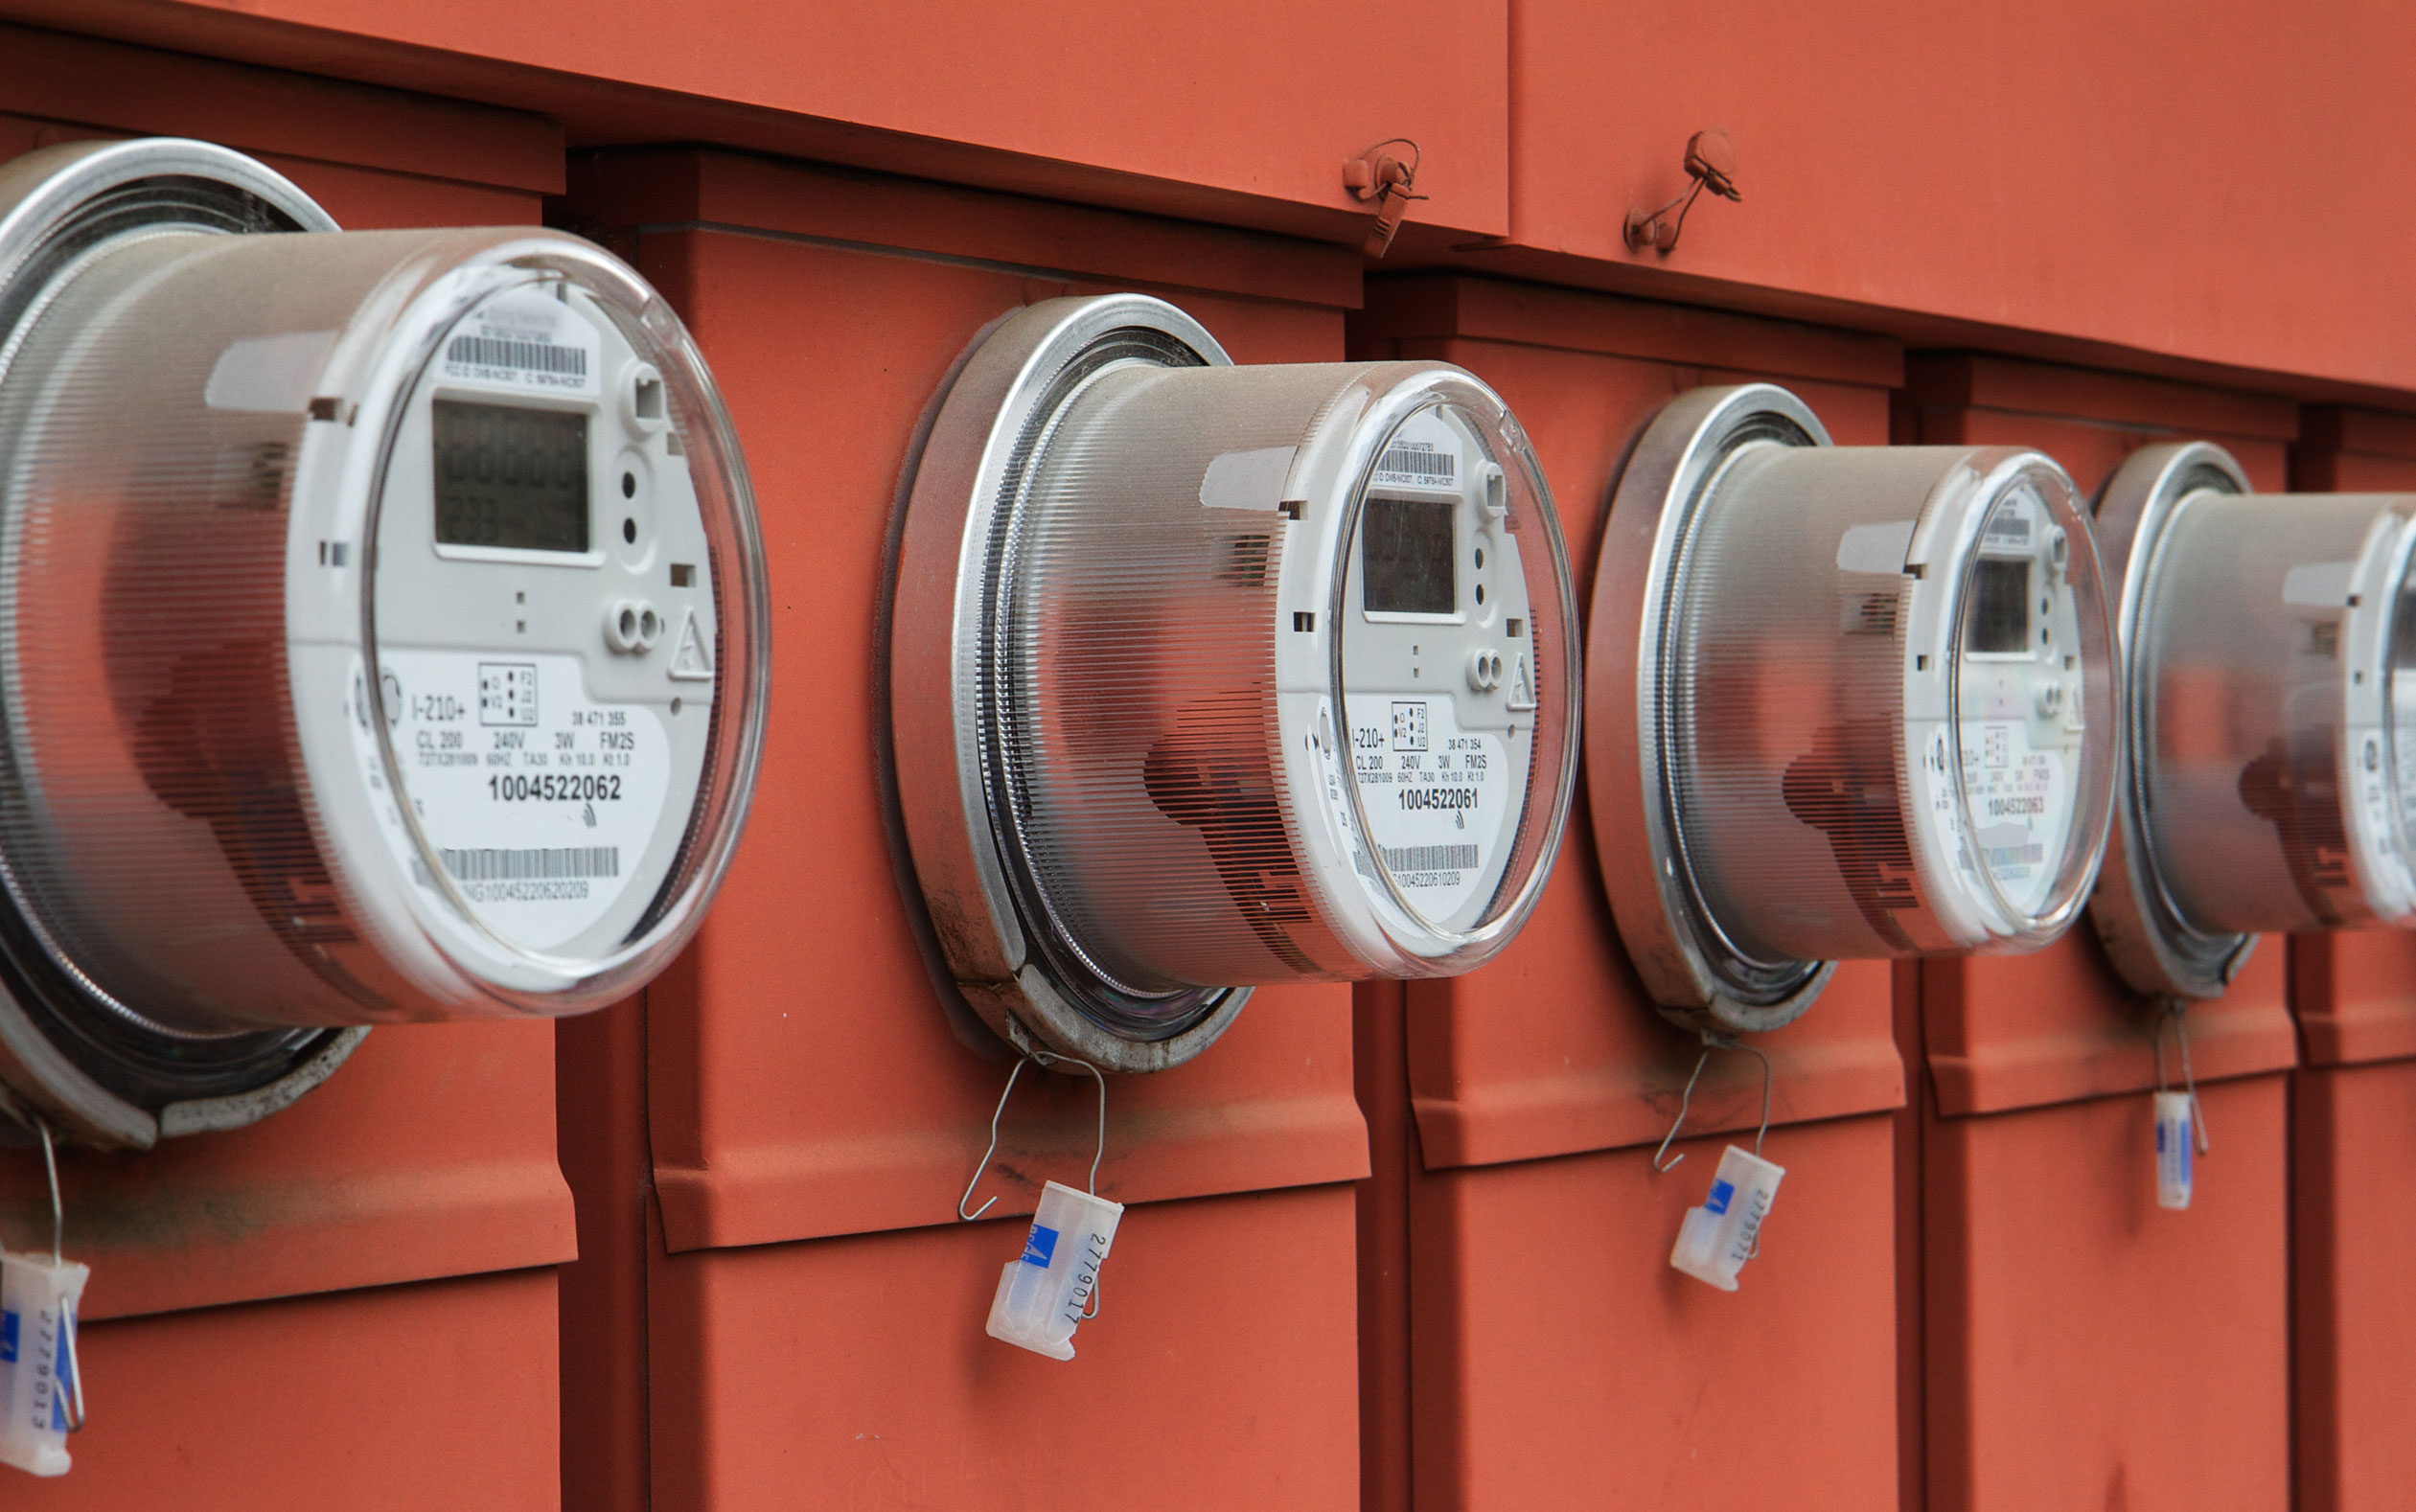 Who Benefits from Utility Meters?